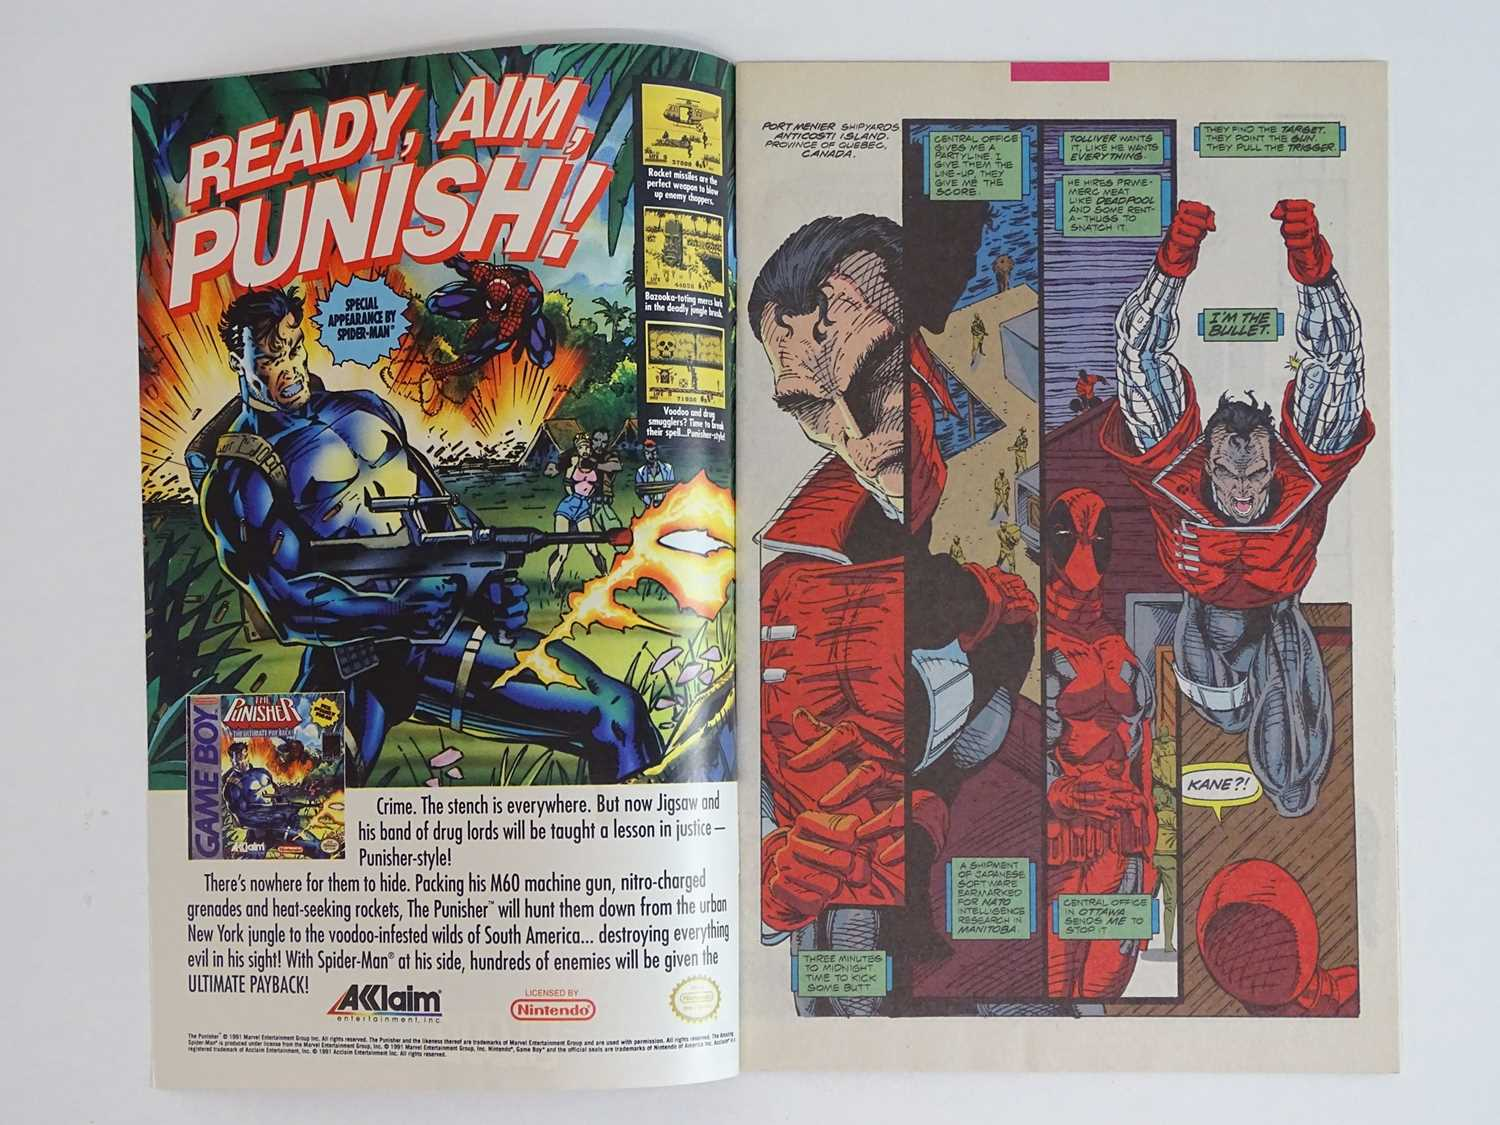 X-FORCE #2 - (1991 - MARVEL) - Second appearance Deadpool + First appearance Weapon X + - Image 3 of 9